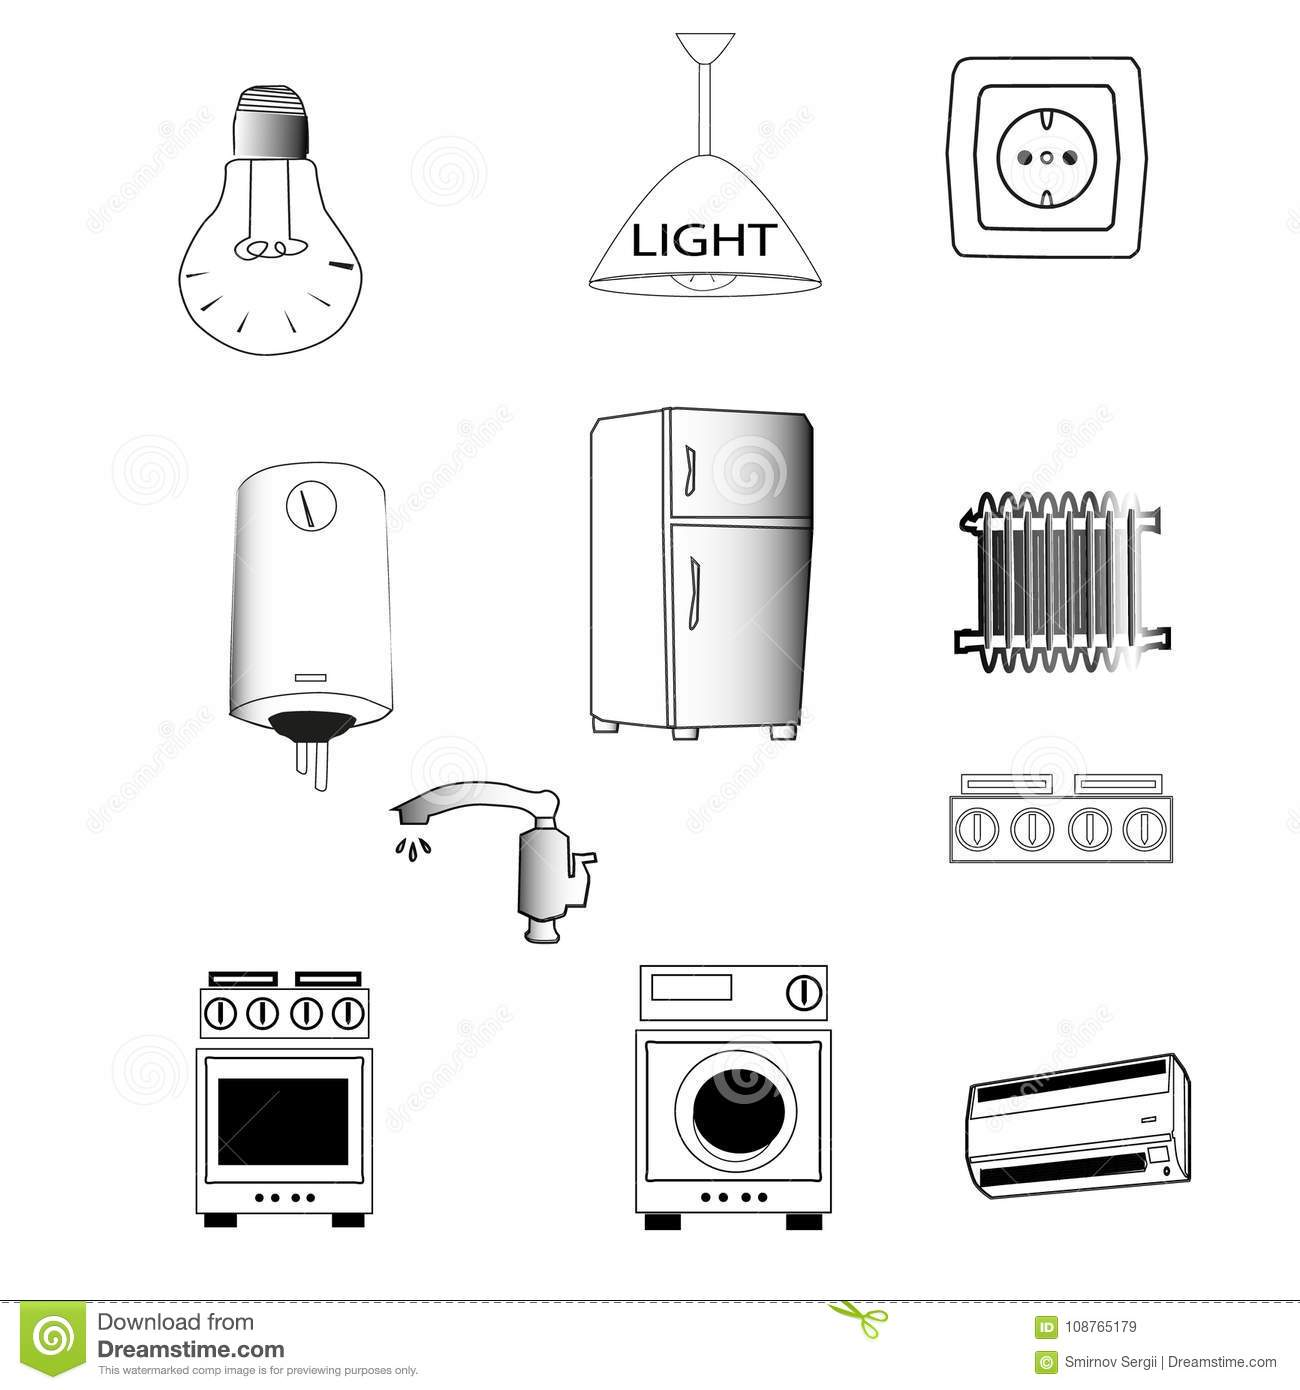 typical house in alarm system diagram